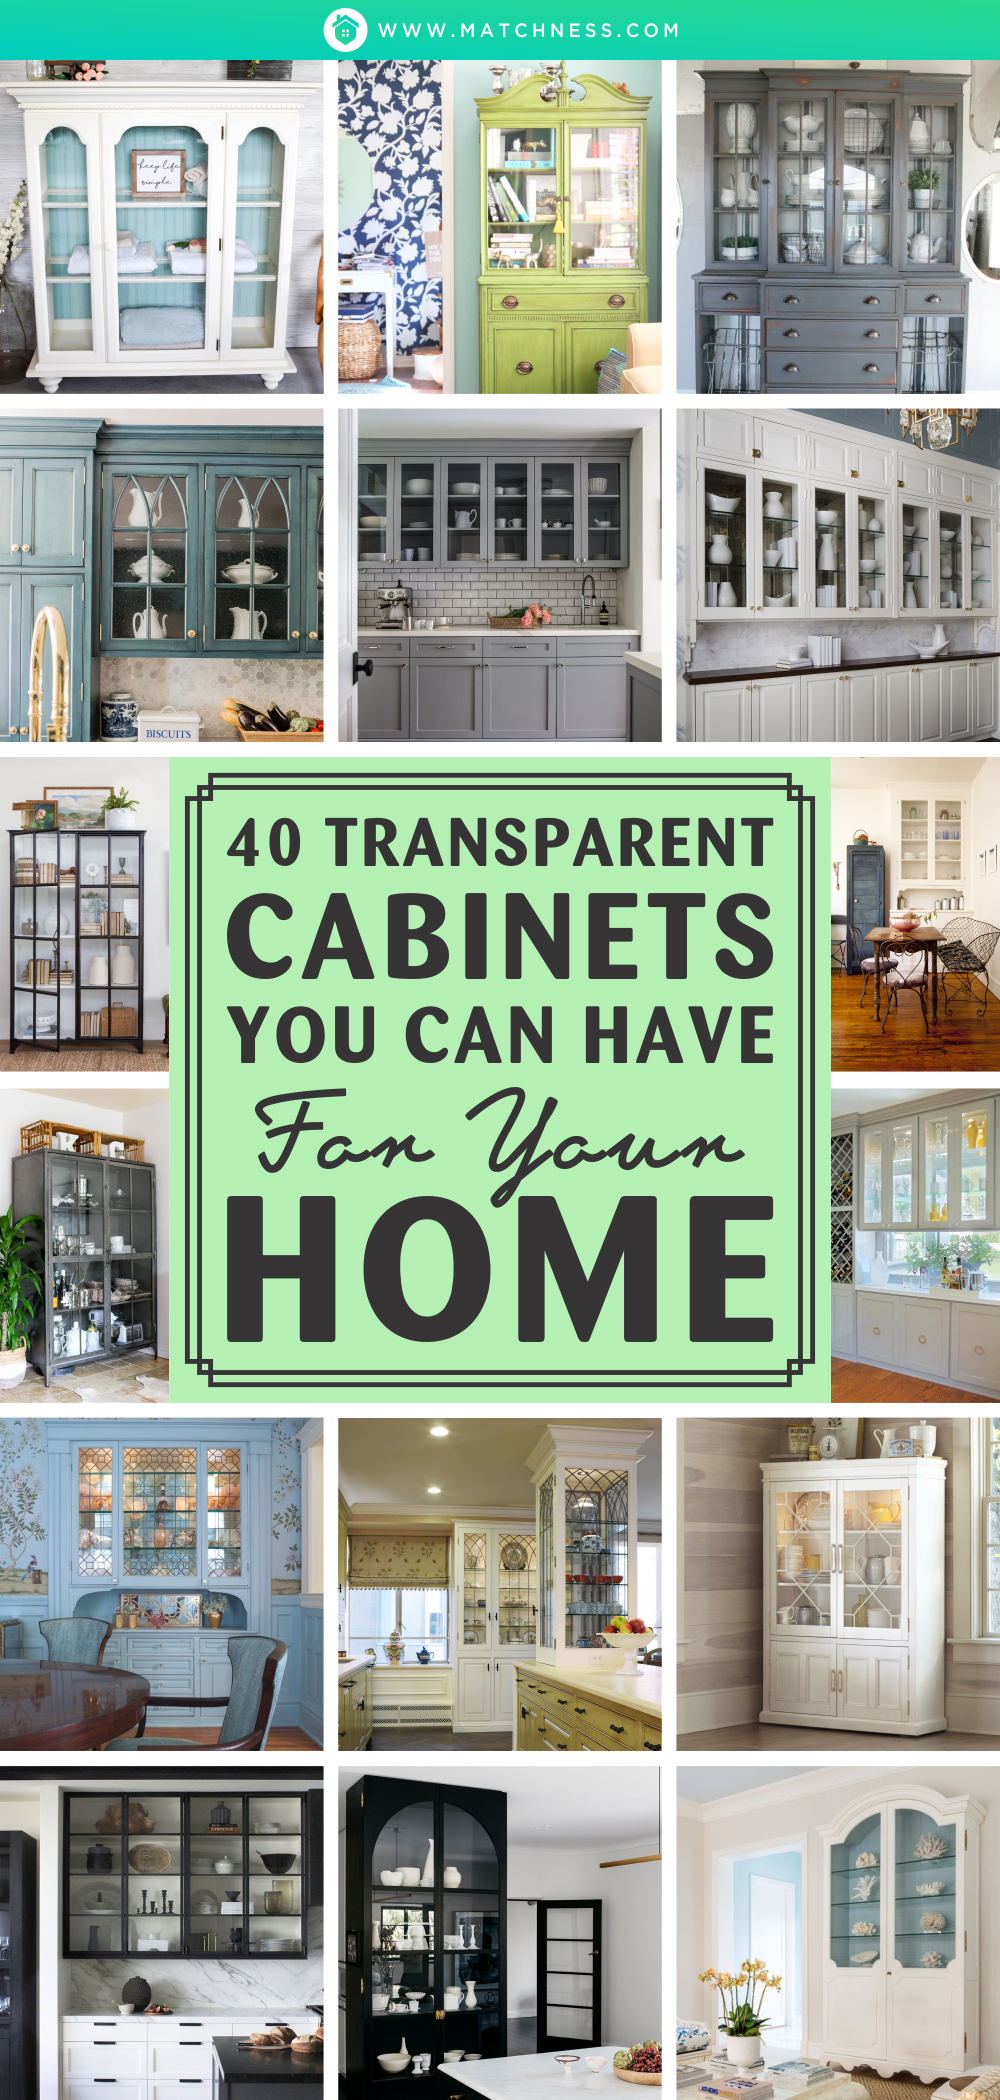 40 transparent cabinets you can have for your home1